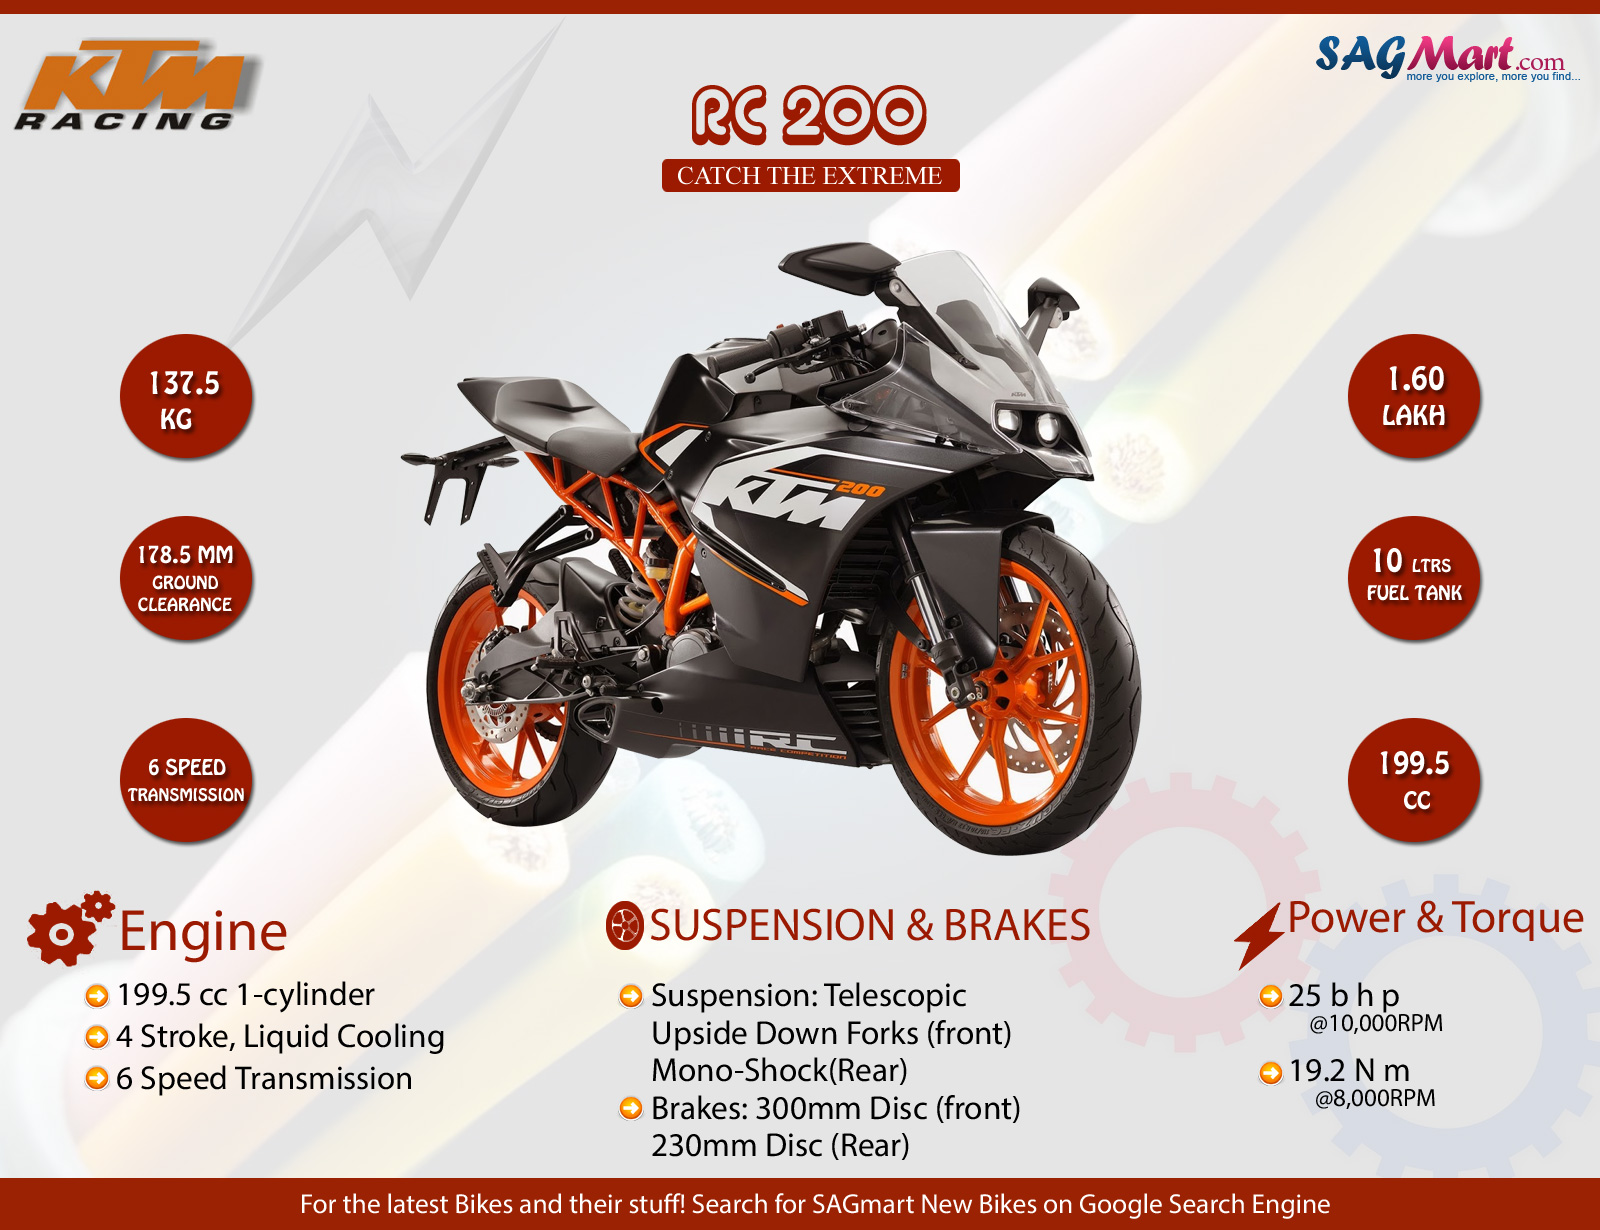 ktm RC 200 bike infographic